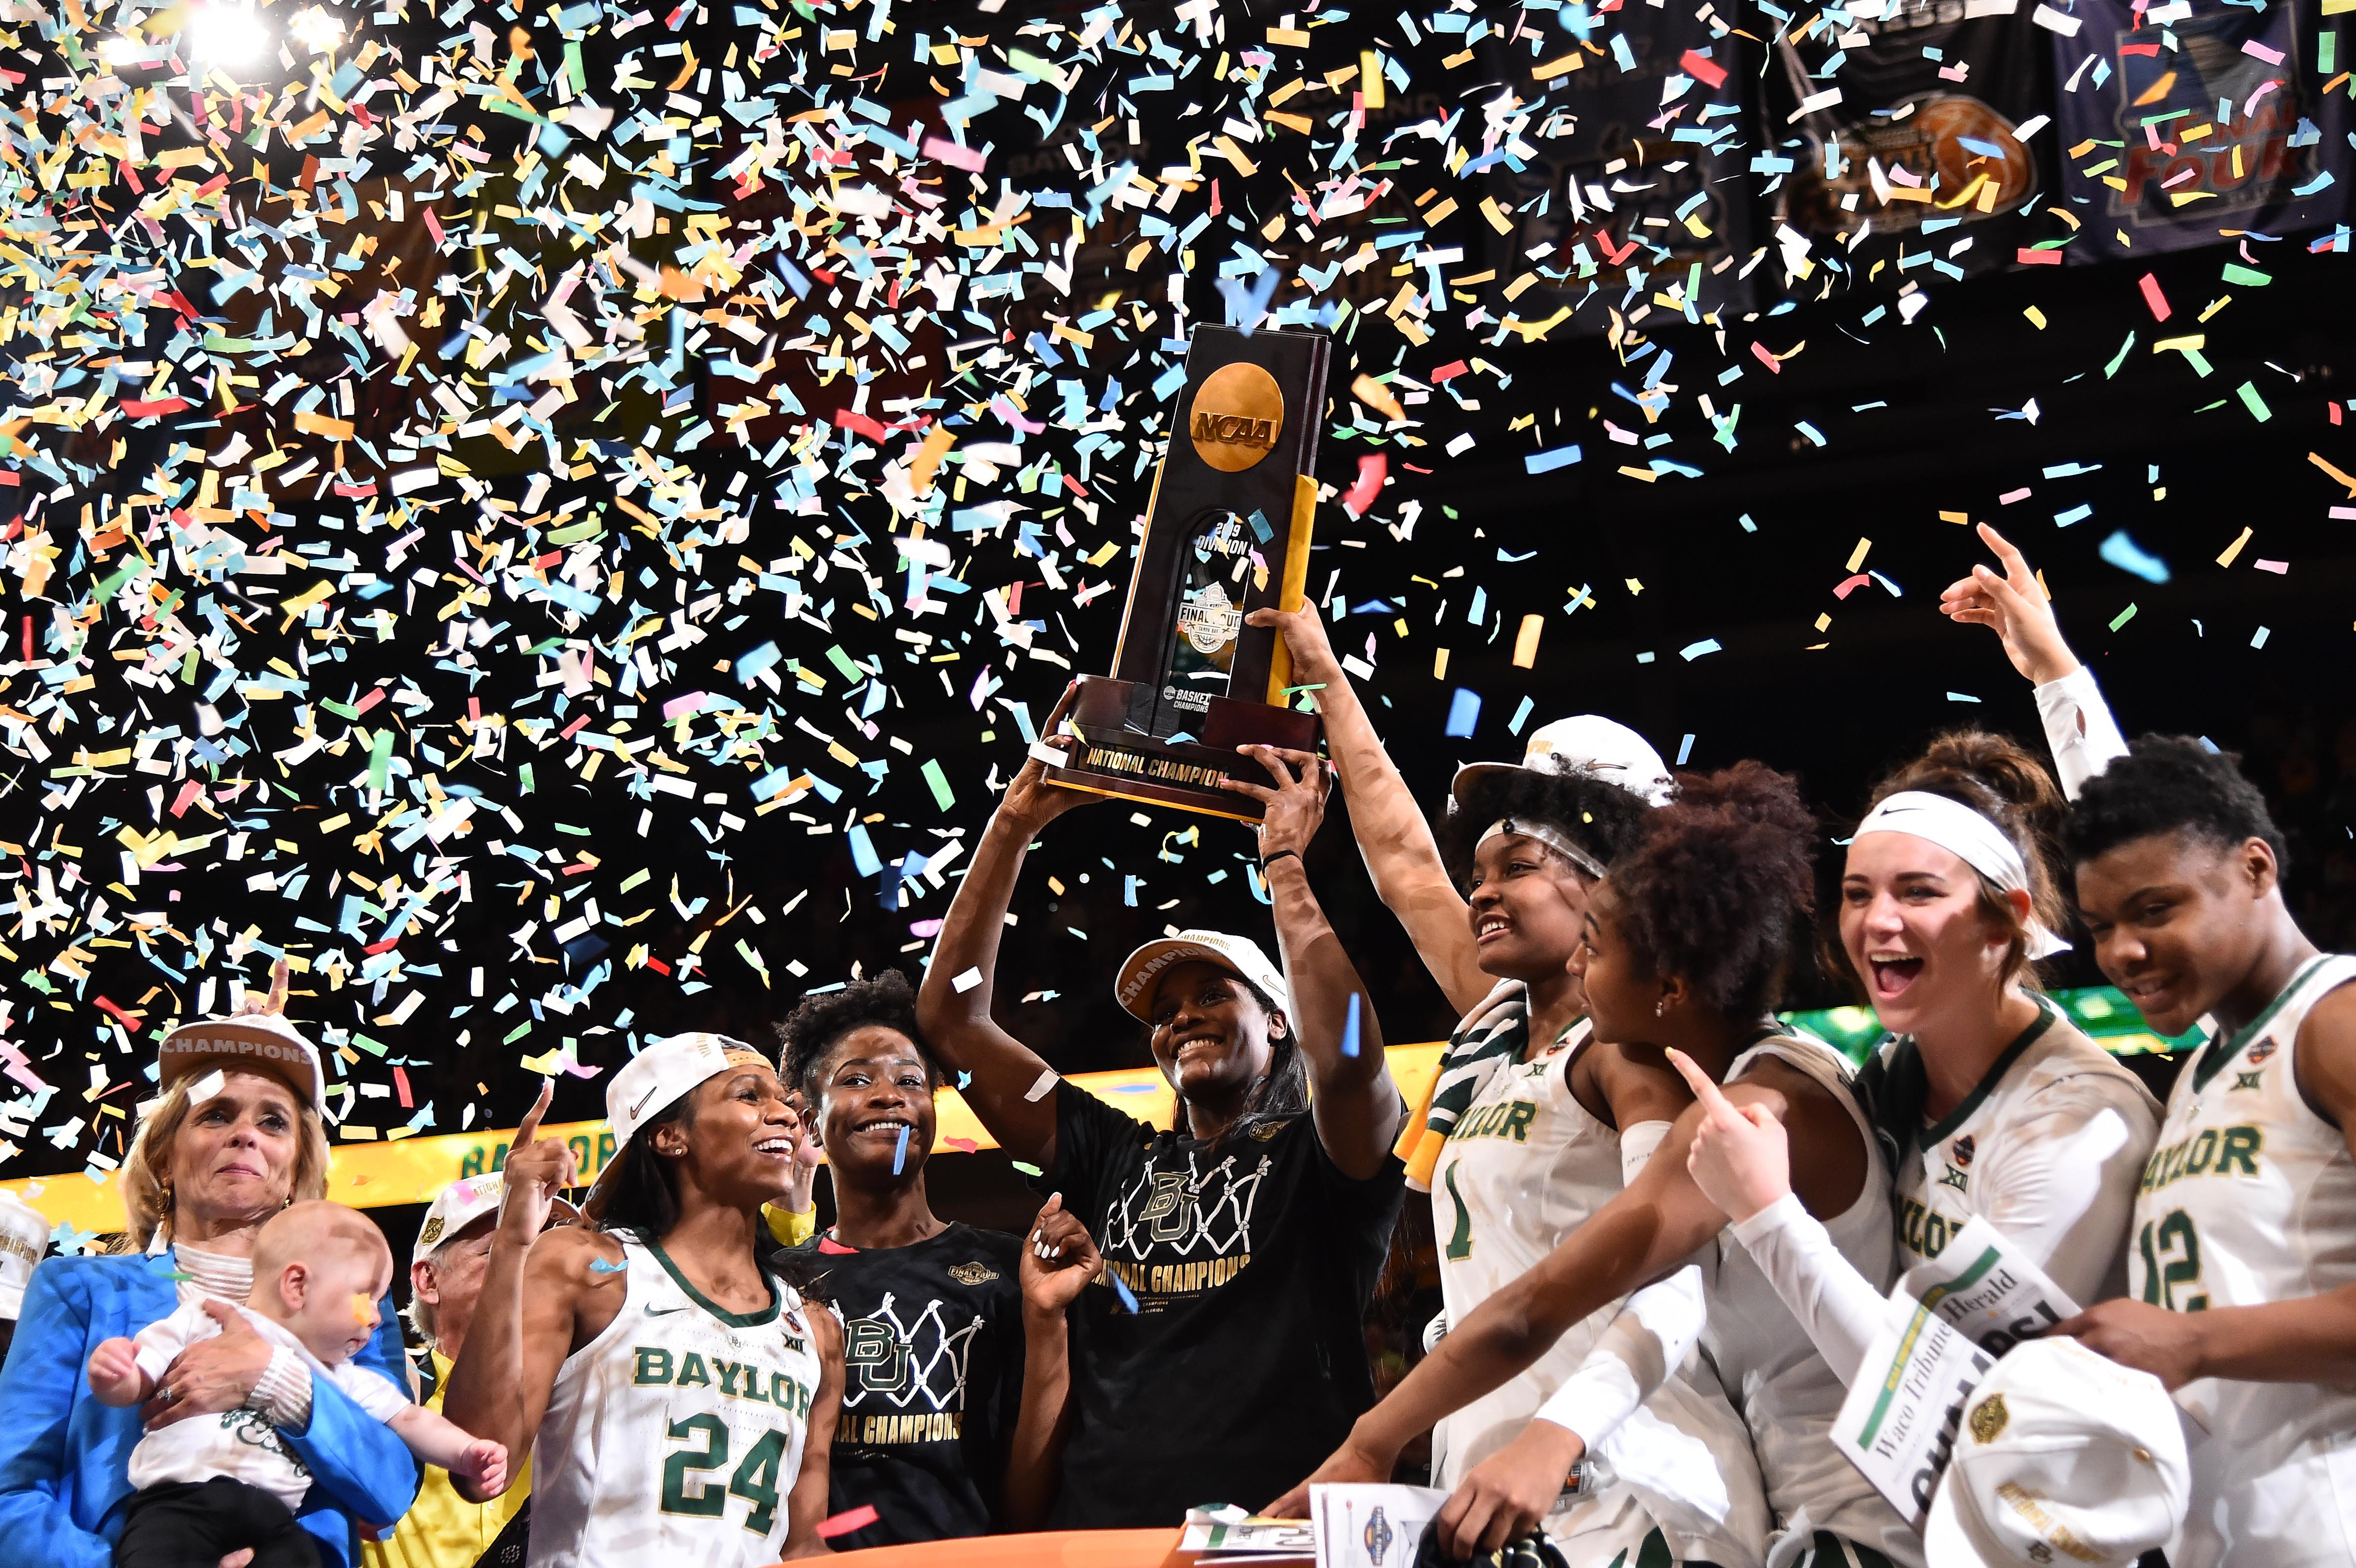 Apr 7, 2019; Tampa, FL, USA; Baylor Lady Bears center Kalani Brown (21) and teammates hoist the trophy after defeating the Notre Dame Fighting Irish to win the championship game of the women's Final Four of the 2019 NCAA Tournament at Amalie Arena. Mandatory Credit: Jasen Vinlove-USA TODAY Sports